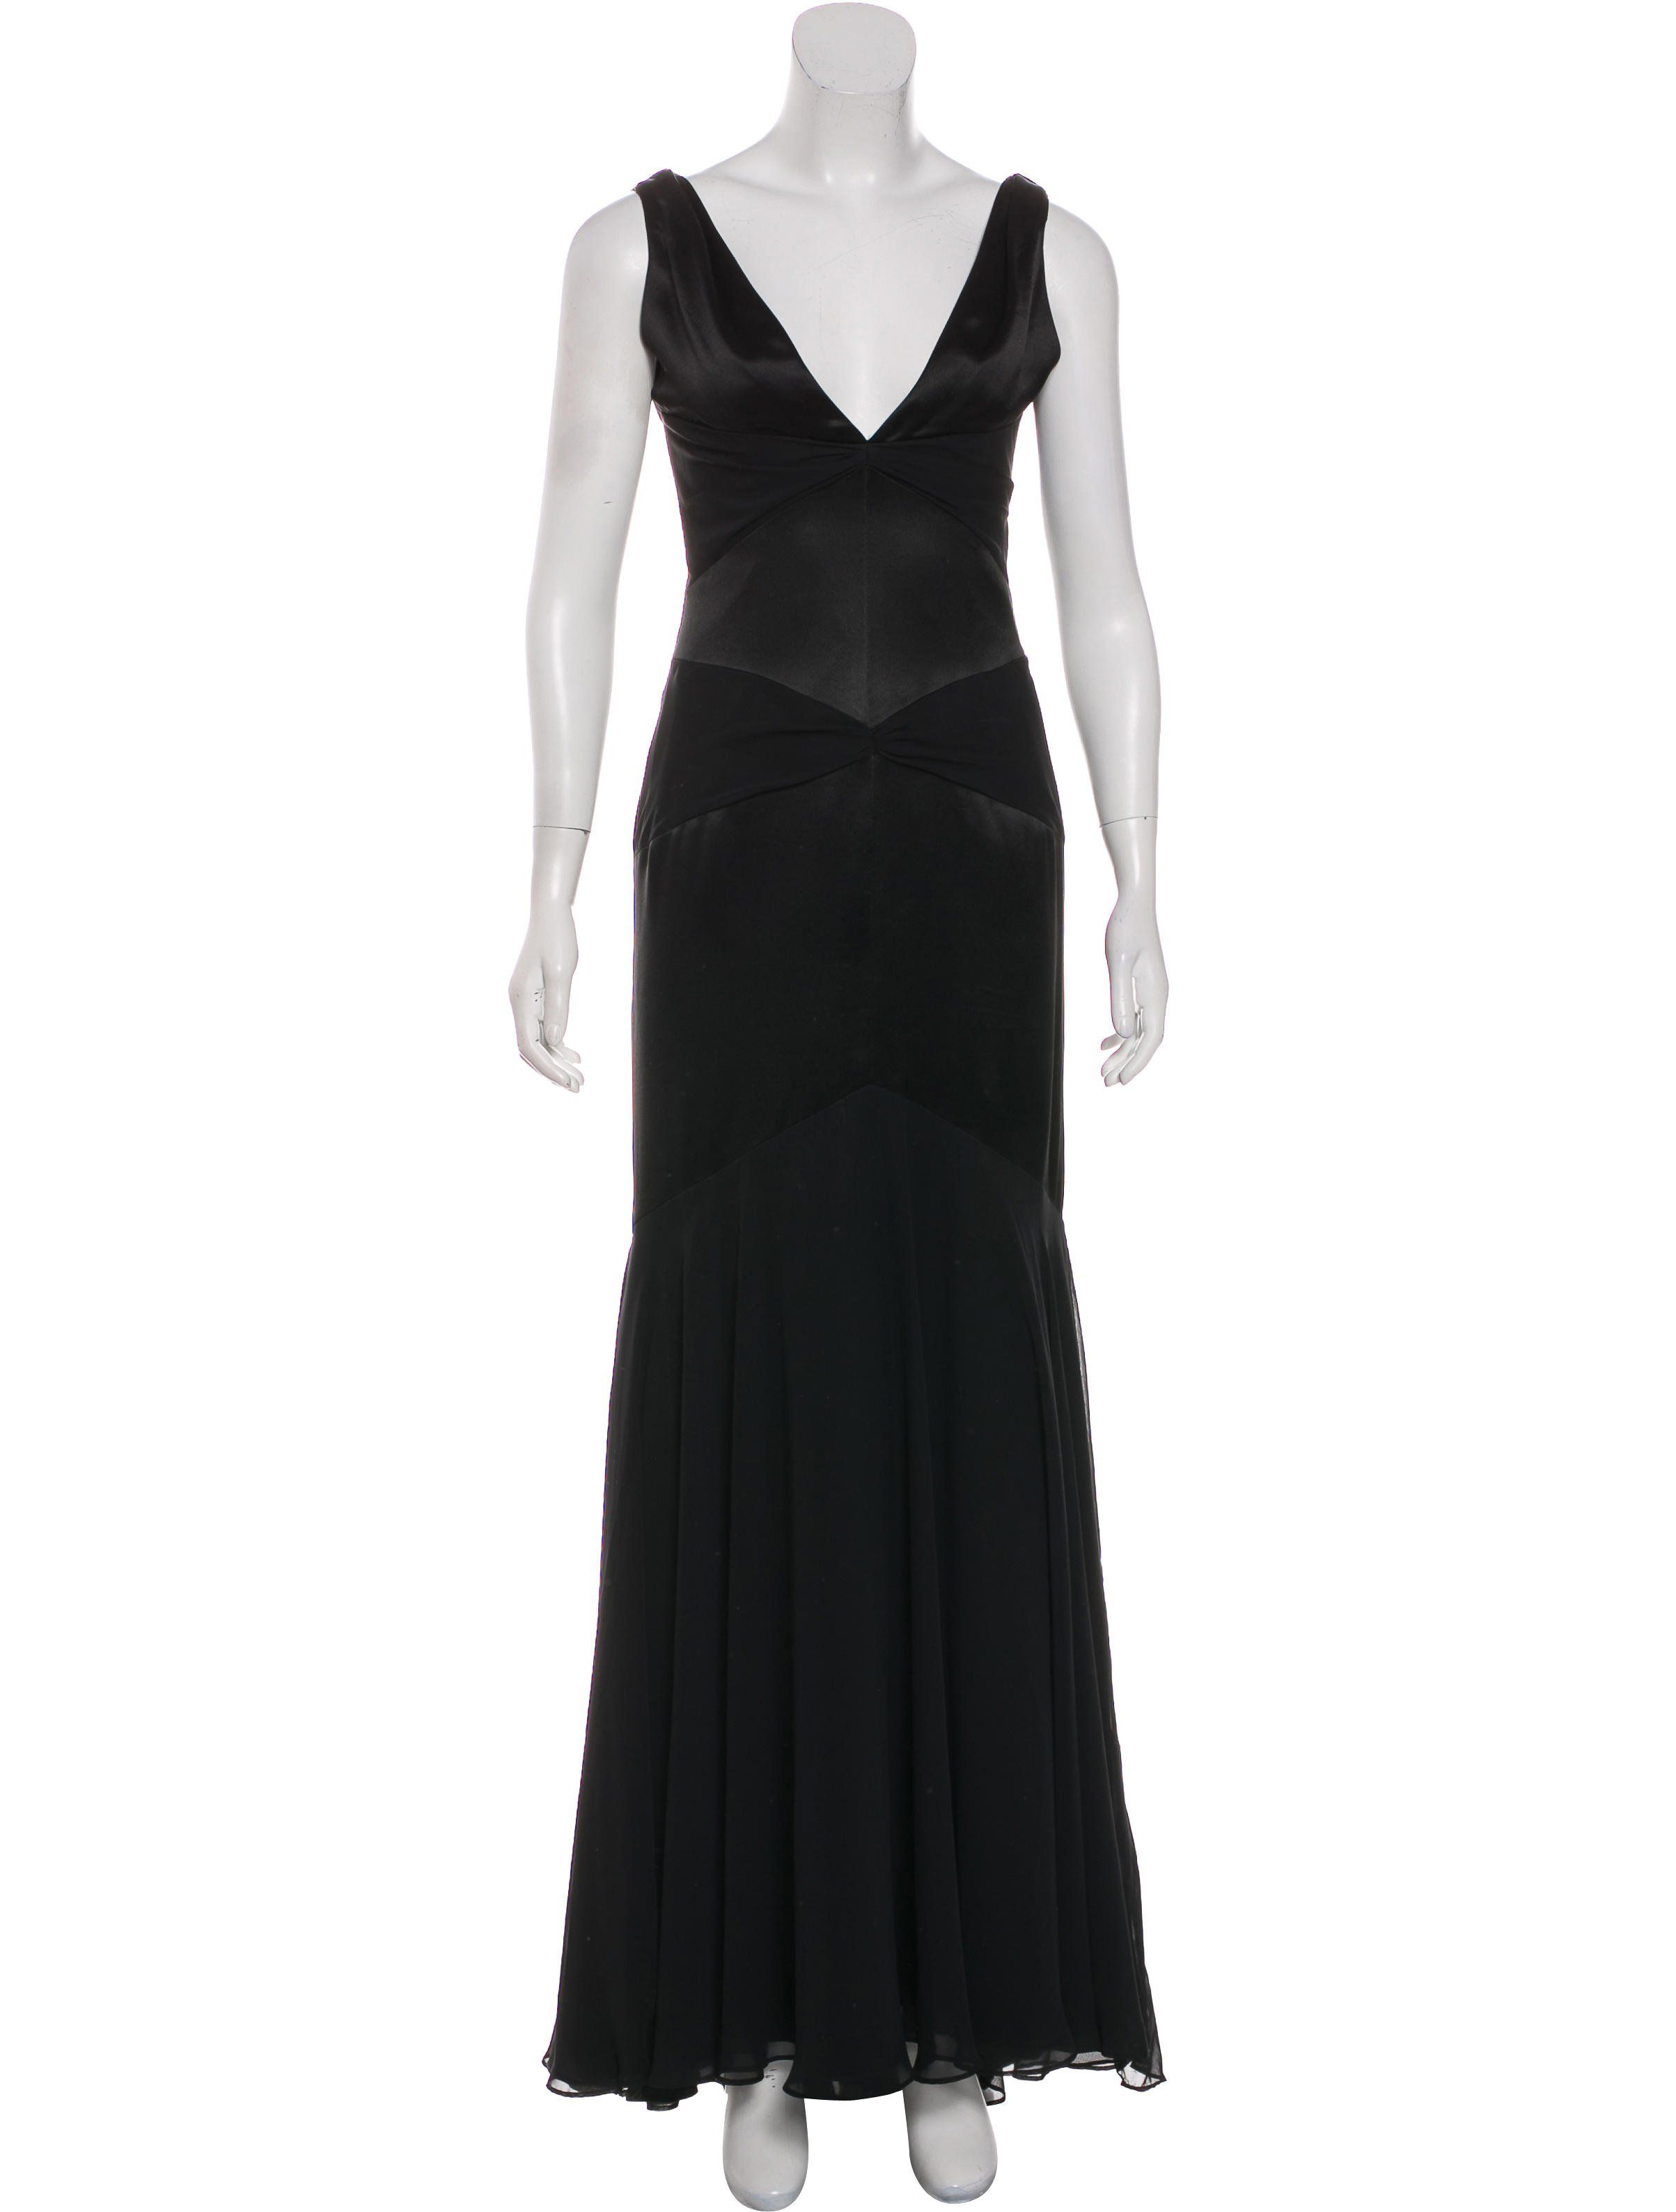 bca340d3c7a Black Vera Wang gown featuring gathered accents throughout